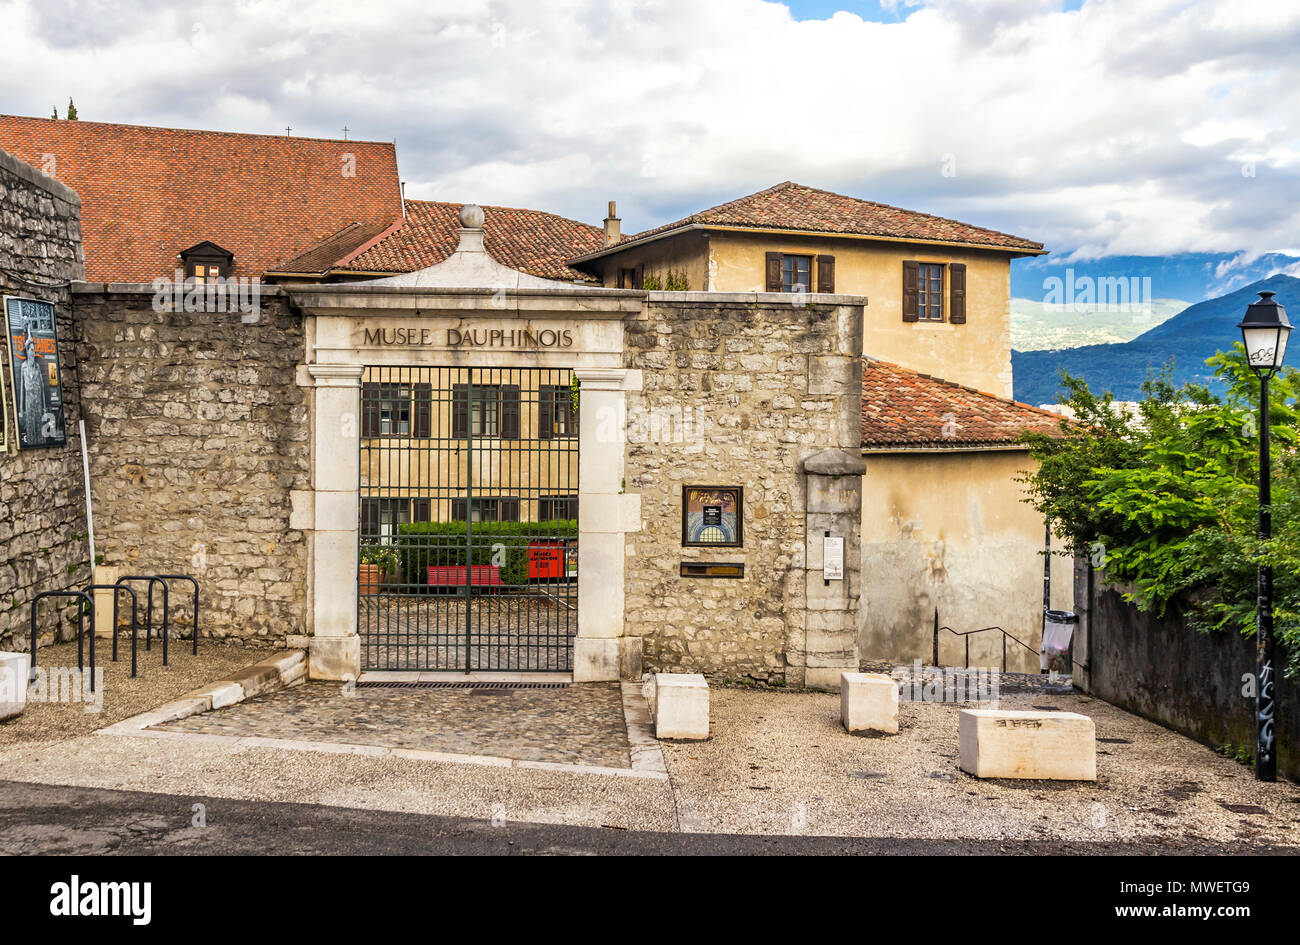 Entrance of The Dauphinois museum (Musee dauphinois) - Stock Image